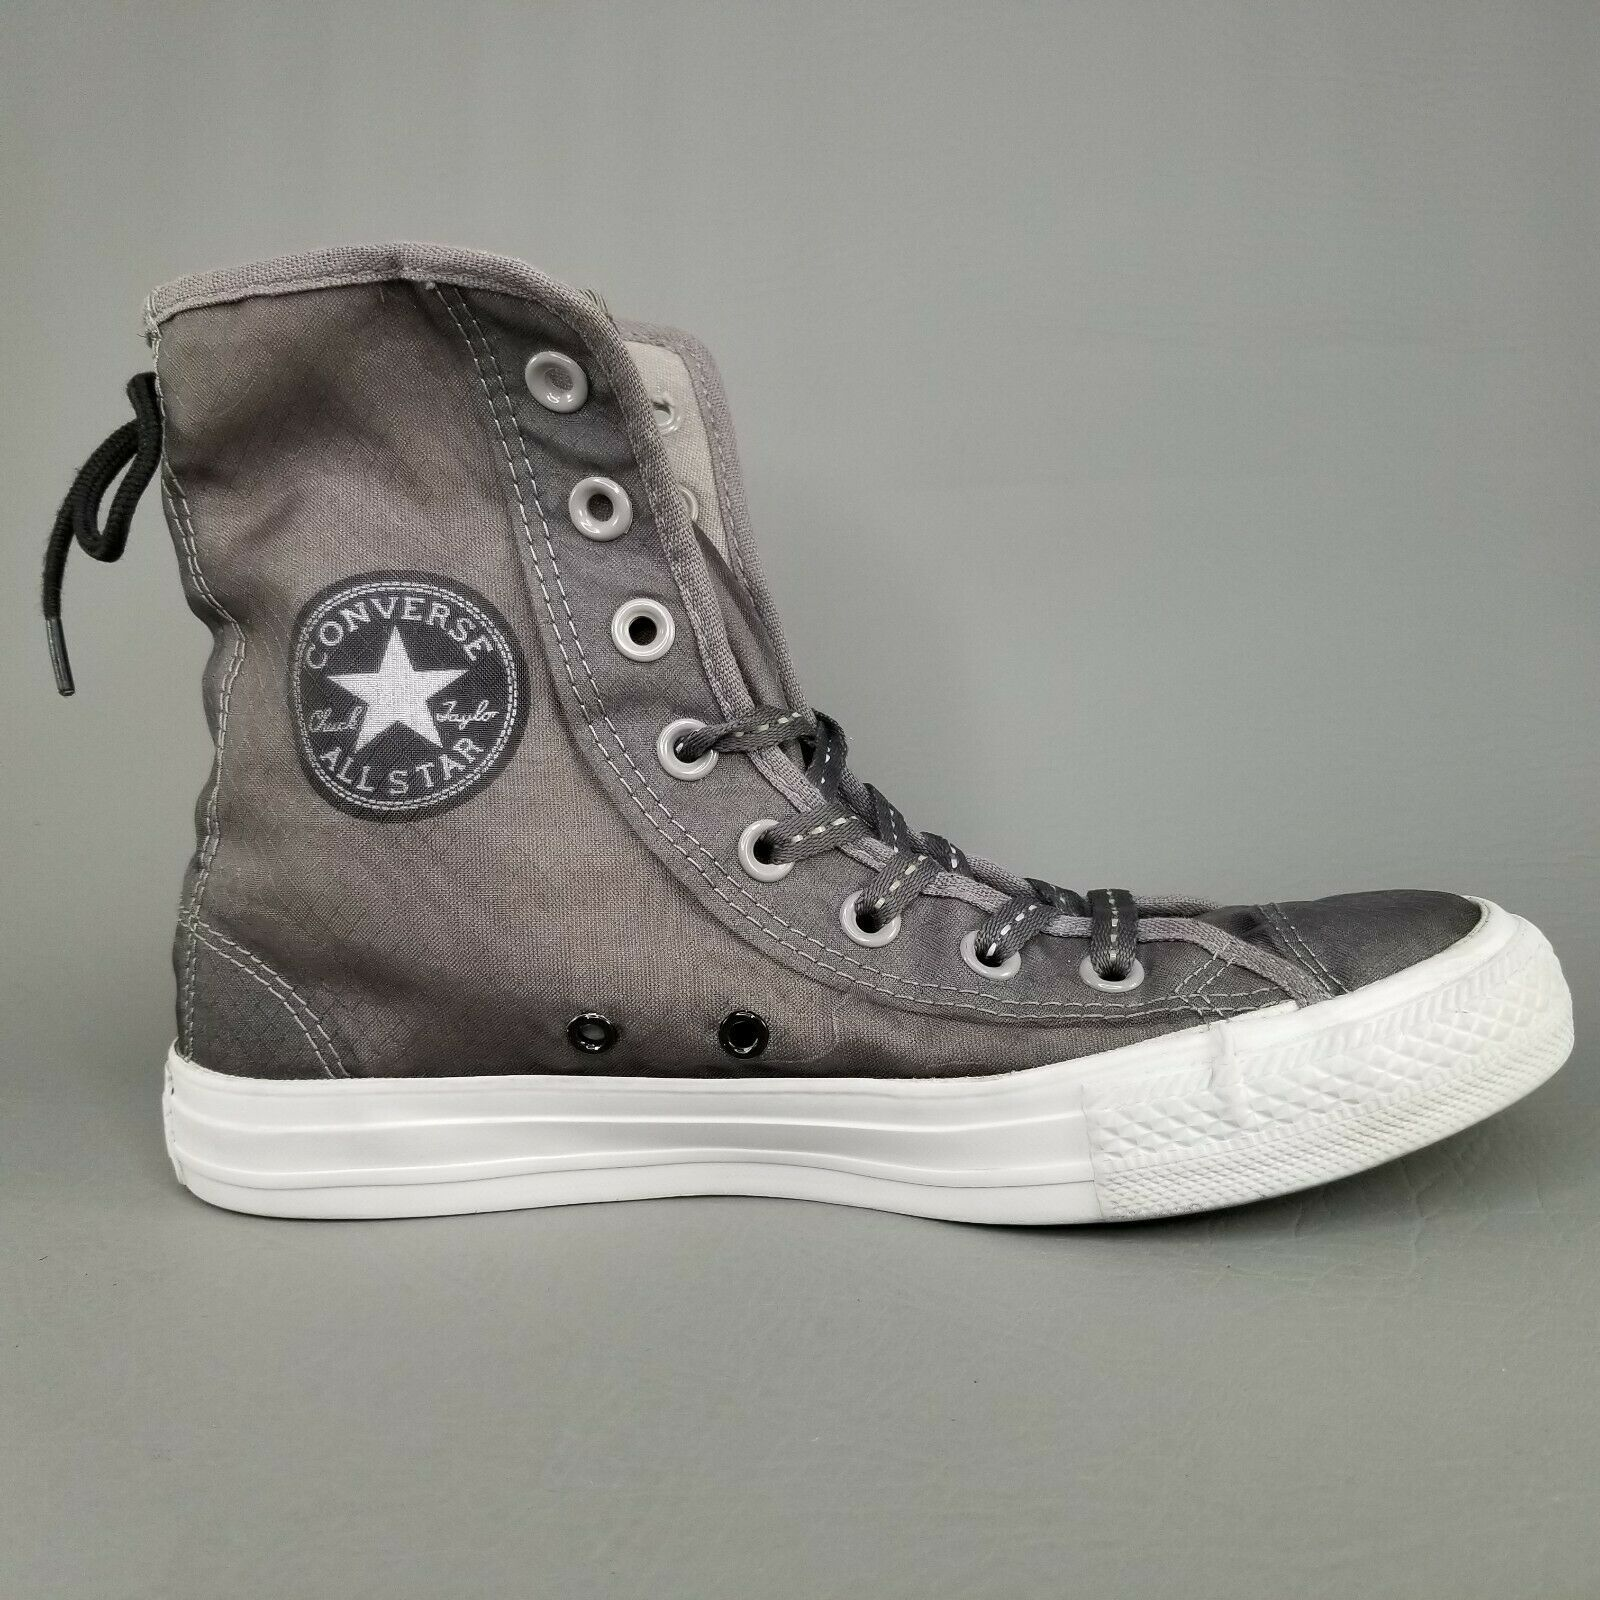 Converse CTAS Back Lace Hi Top Shoes Womens SZ 8 See Through Chucks Gray White image 6